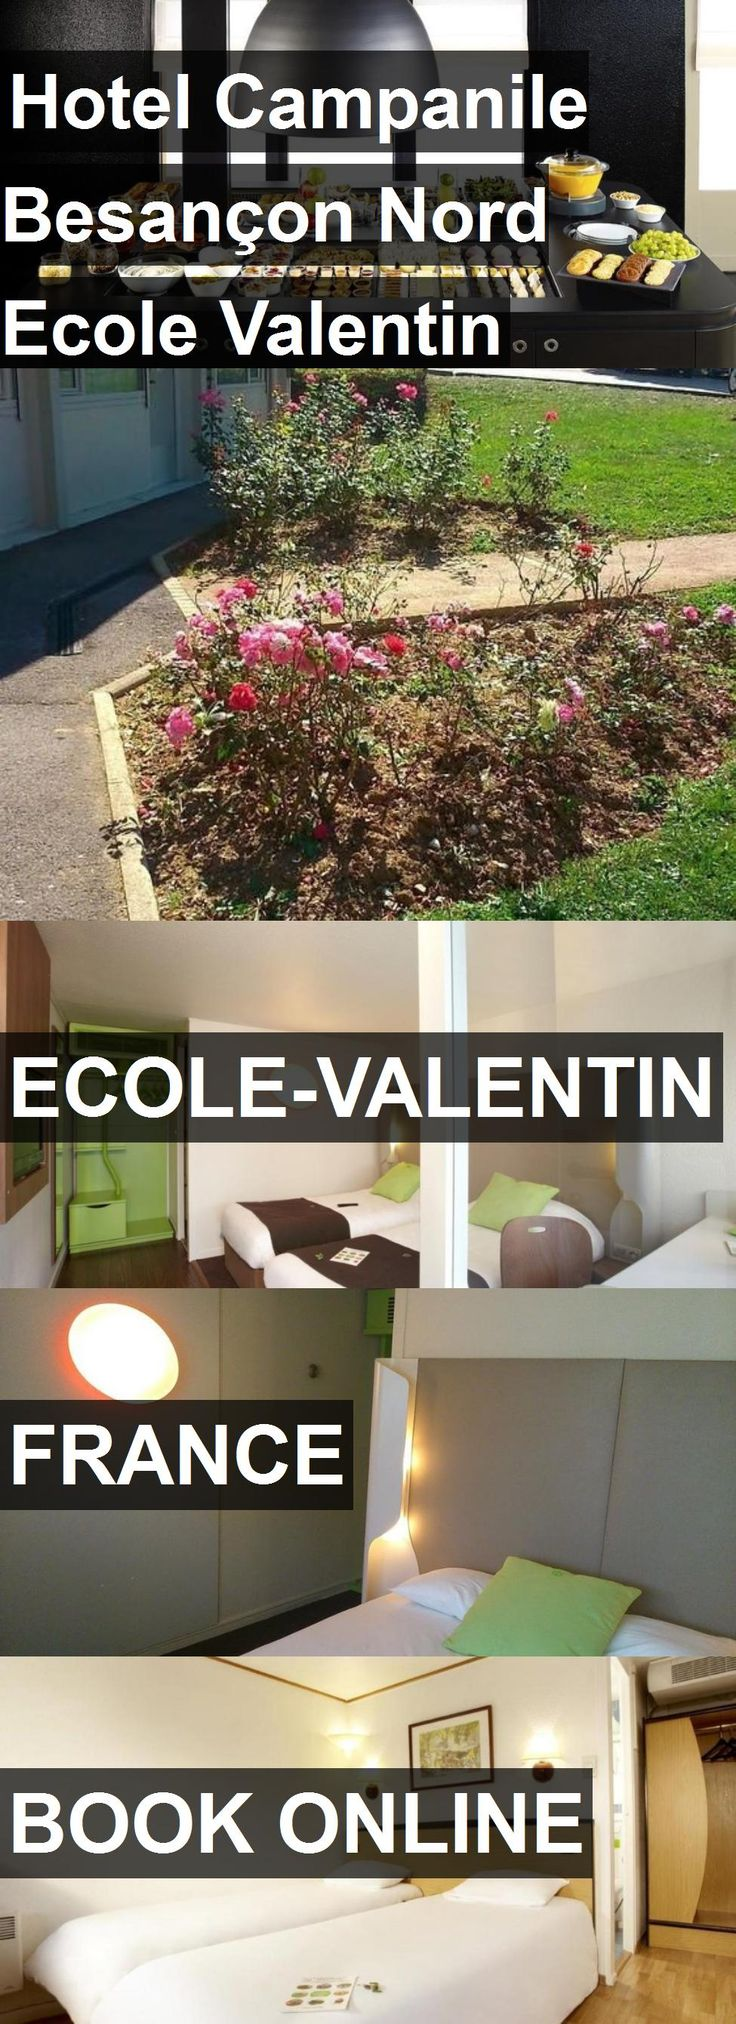 Hotel Hotel Campanile Besançon Nord Ecole Valentin in Ecole-Valentin, France. For more information, photos, reviews and best prices please follow the link. #France #Ecole-Valentin #hotel #travel #vacation